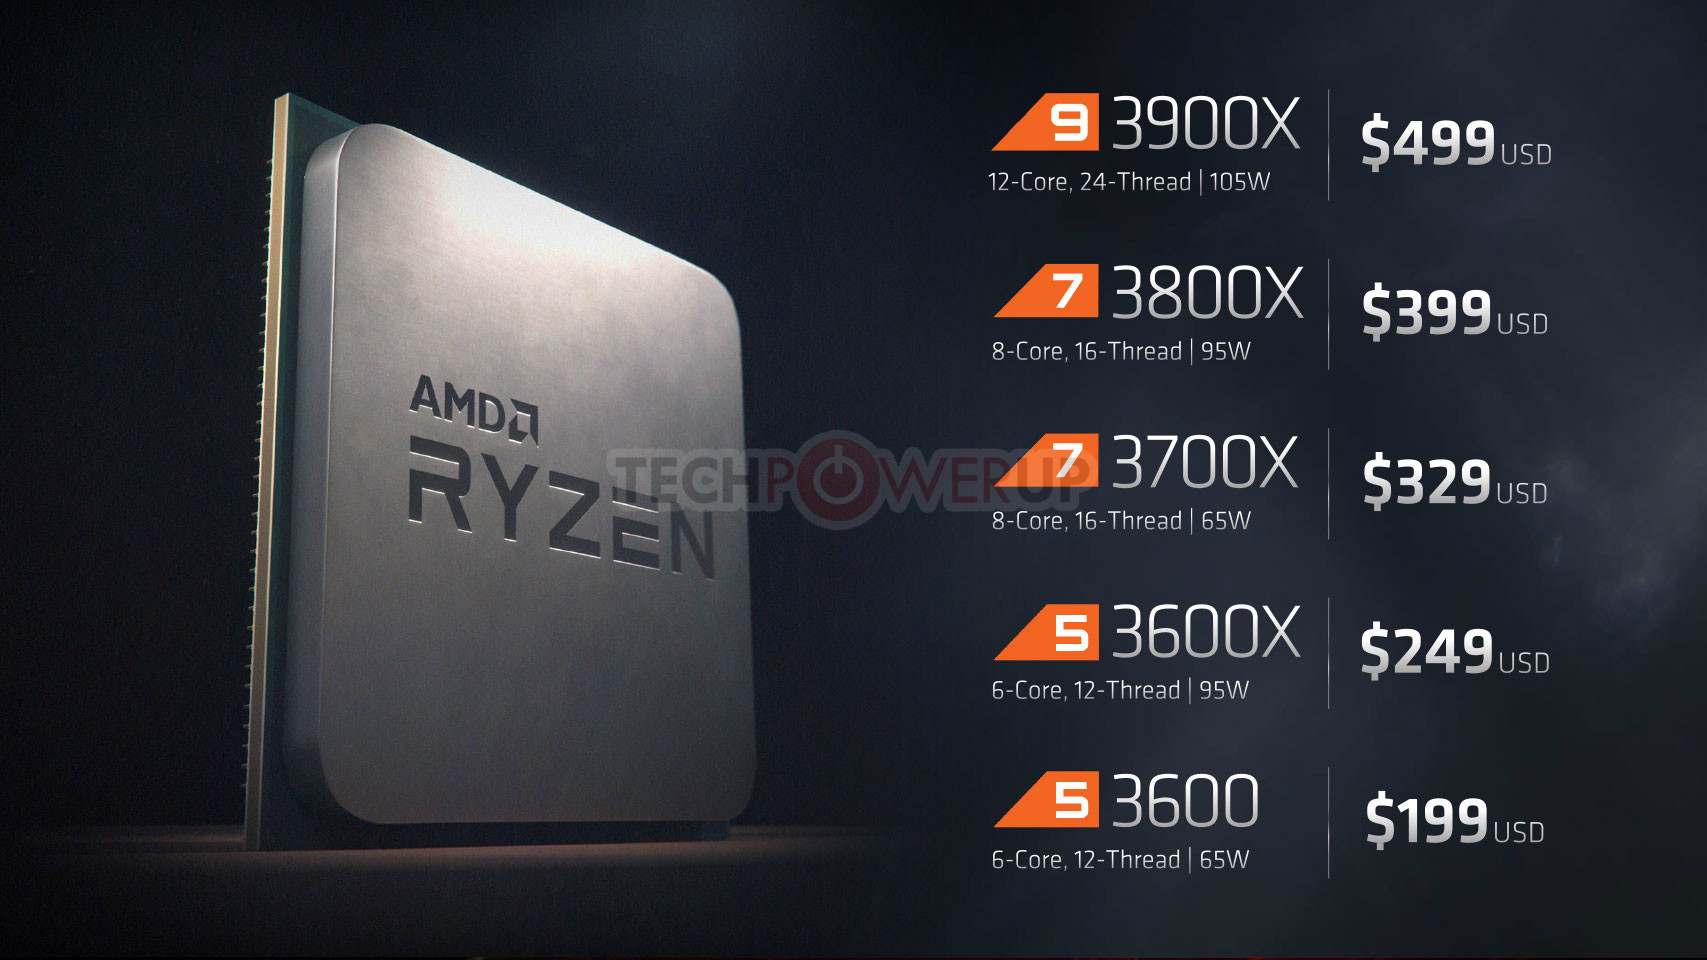 PSA: No Ryzen 3000 Pre-orders Today (1st July), Spare Your